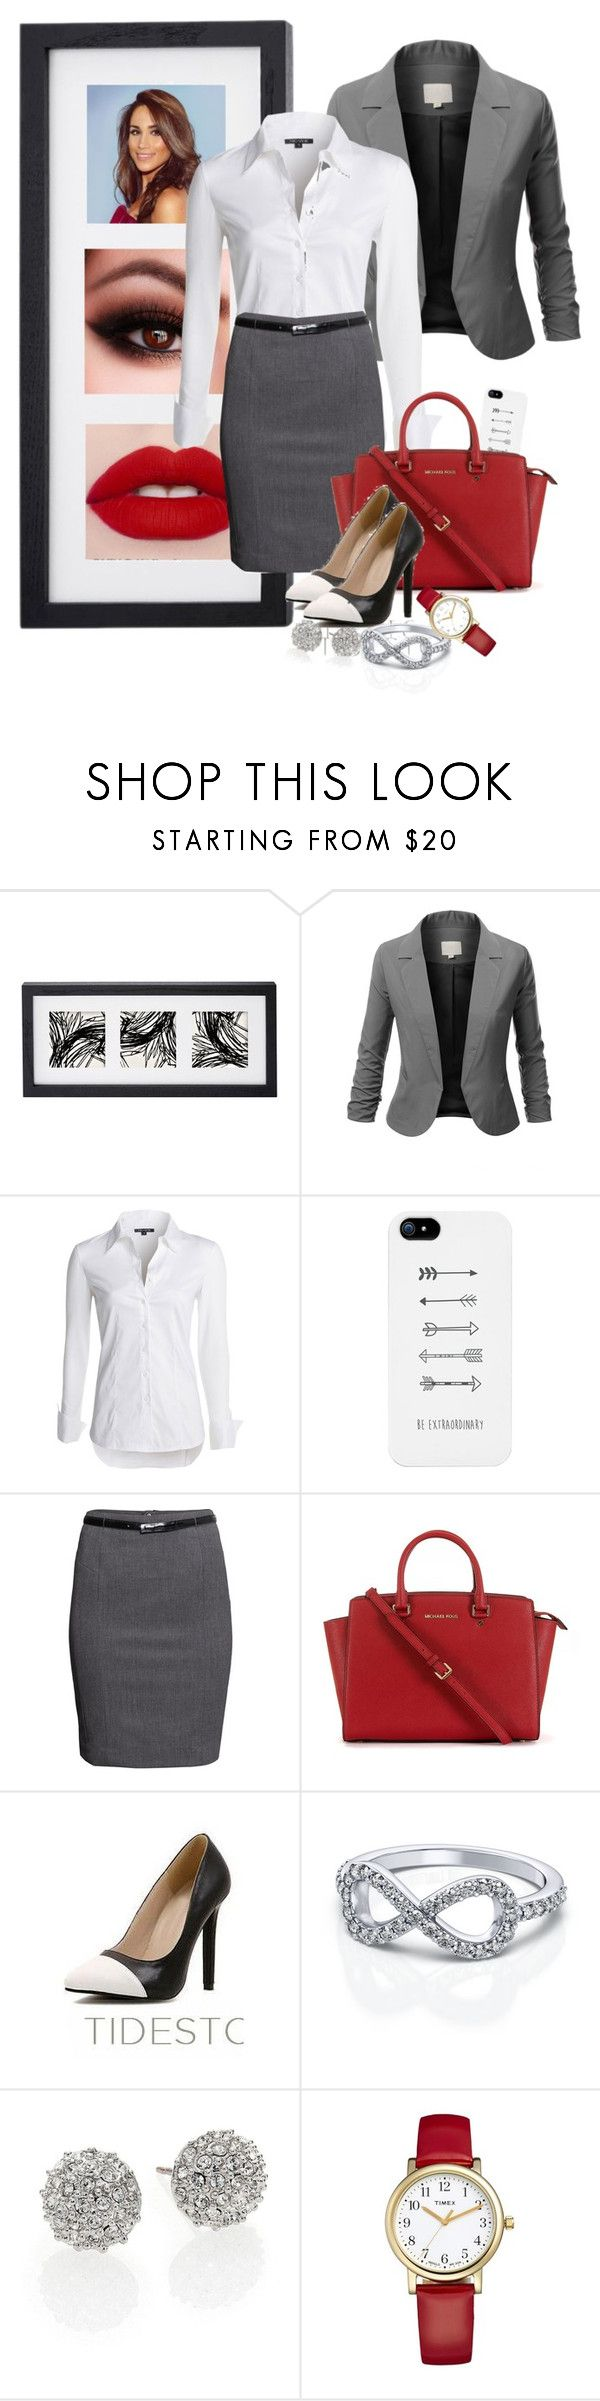 """Suits"" by codestothestars ❤ liked on Polyvore featuring J.TOMSON, NIC+ZOE, LG, H&M, Michael Kors, Kate Spade and Timex"